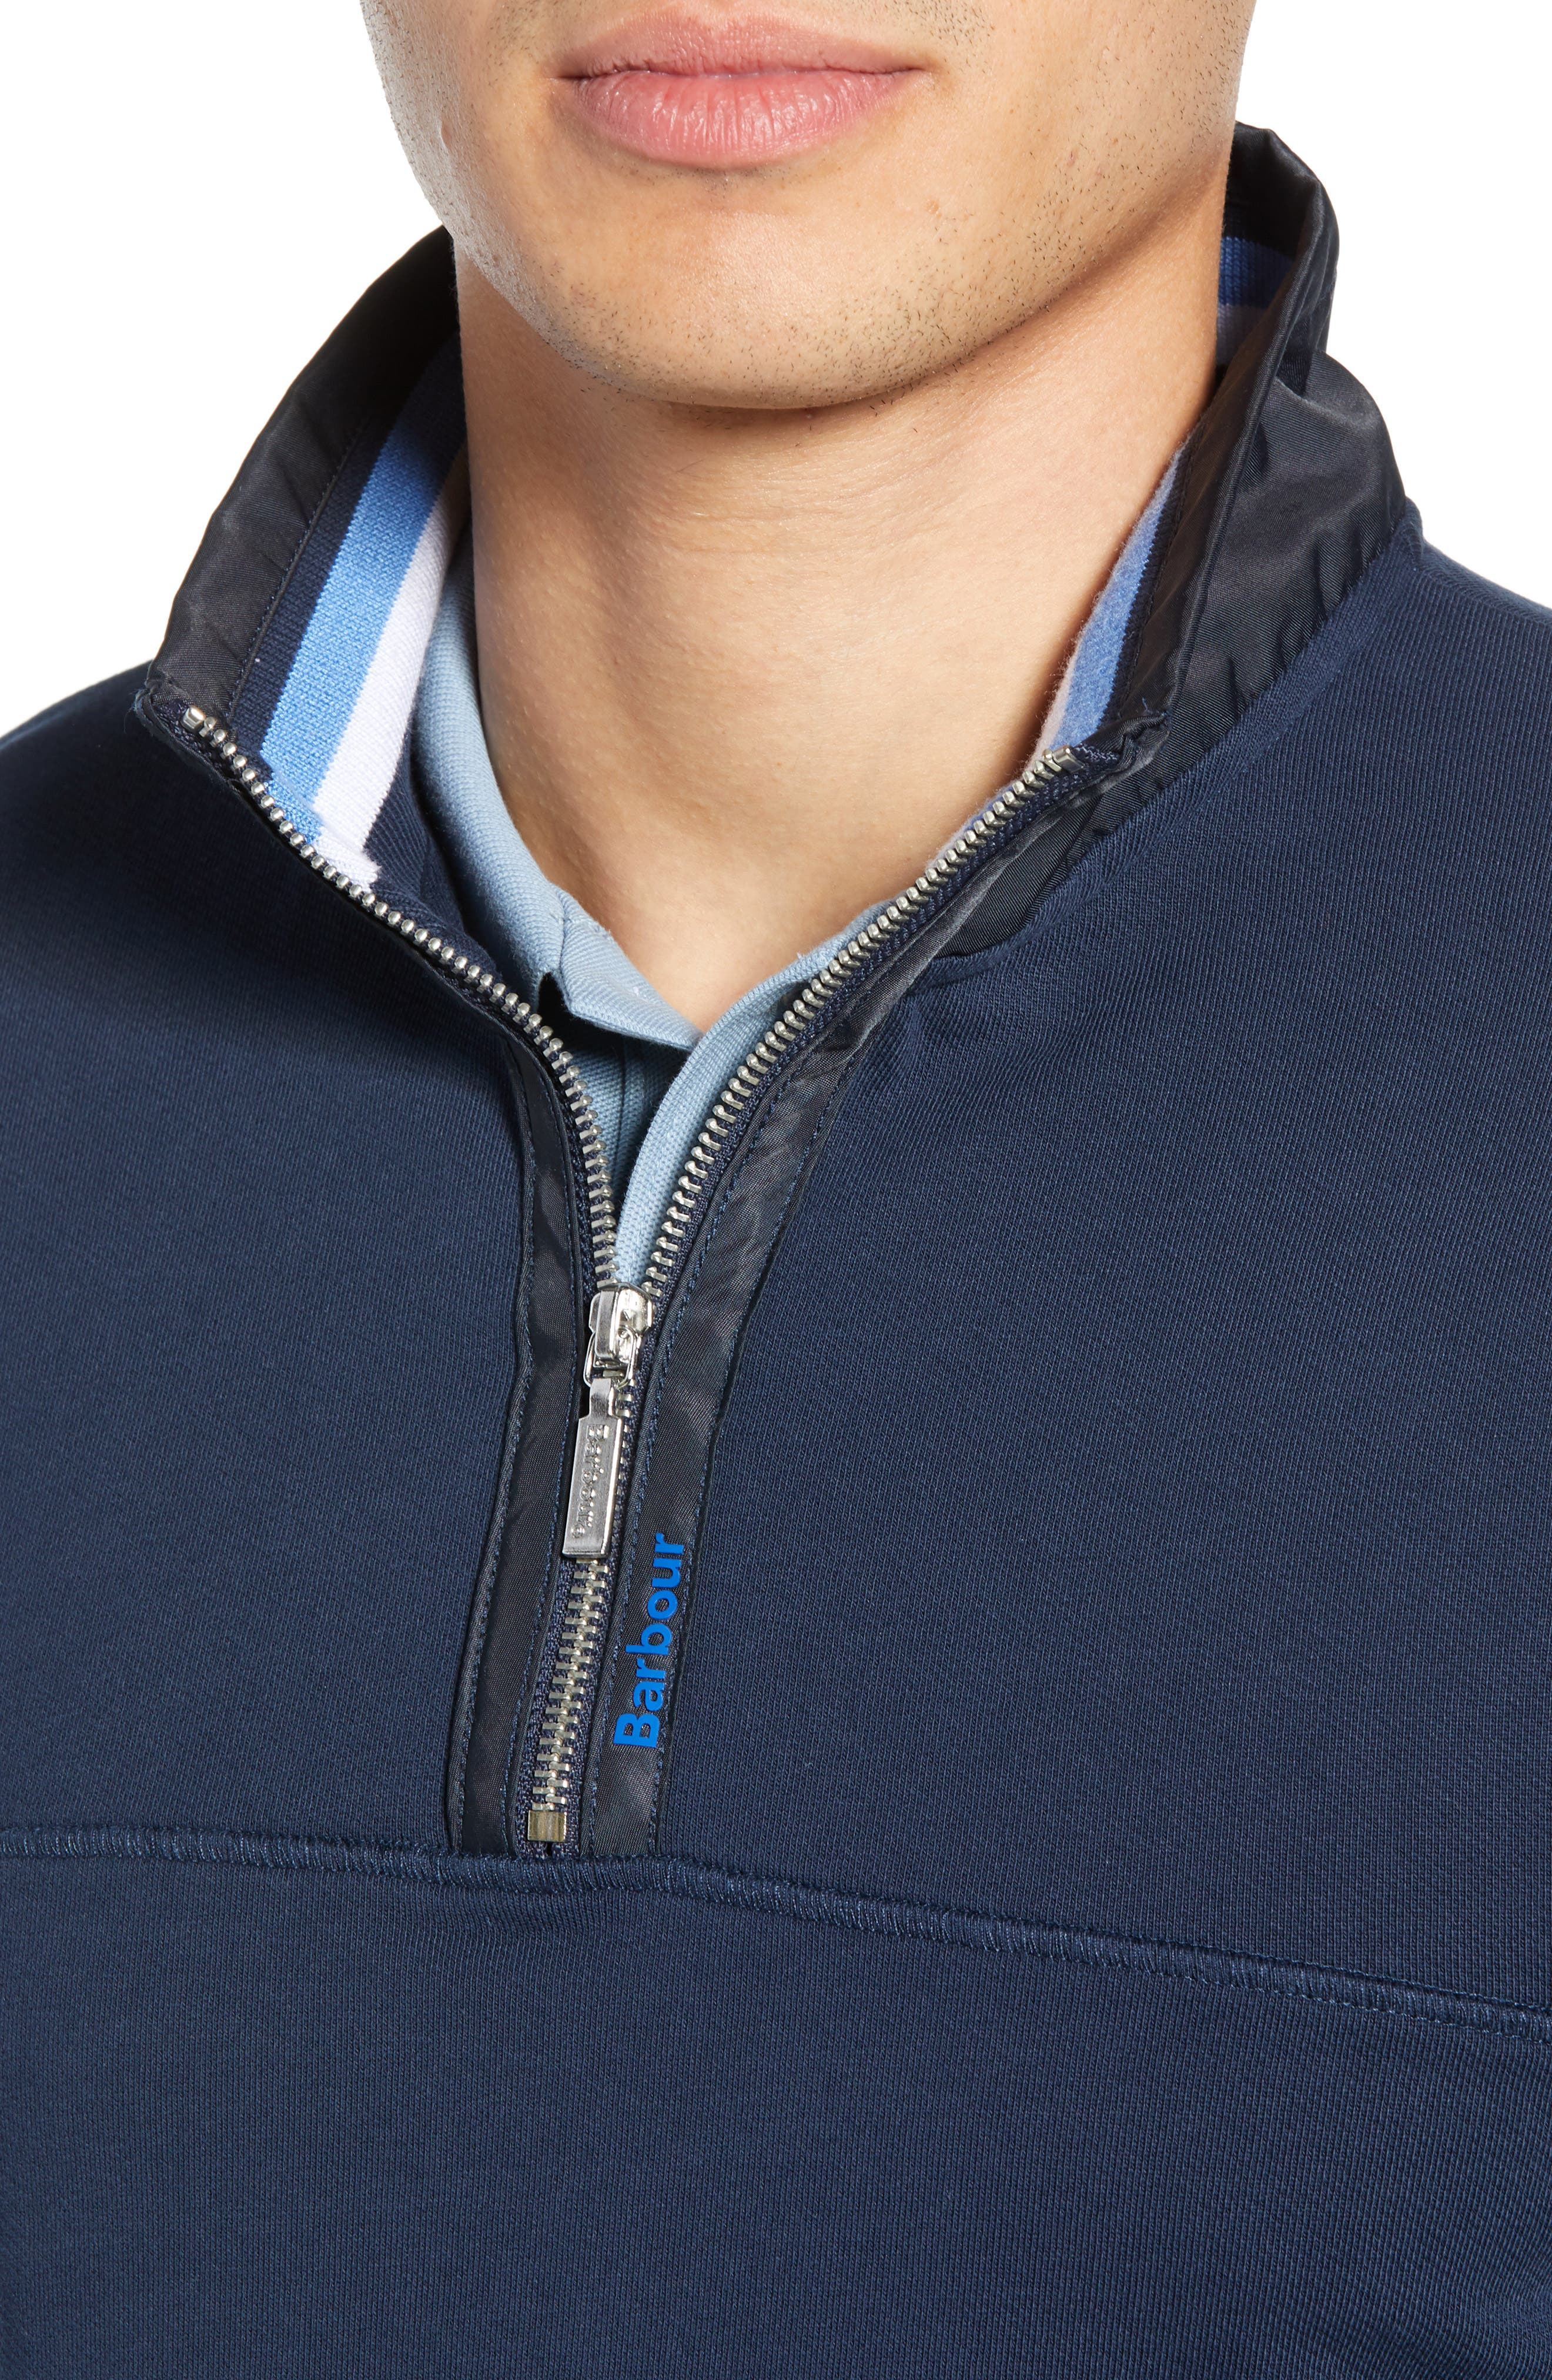 BARBOUR, Seward Half Zip Pullover, Alternate thumbnail 5, color, NAVY